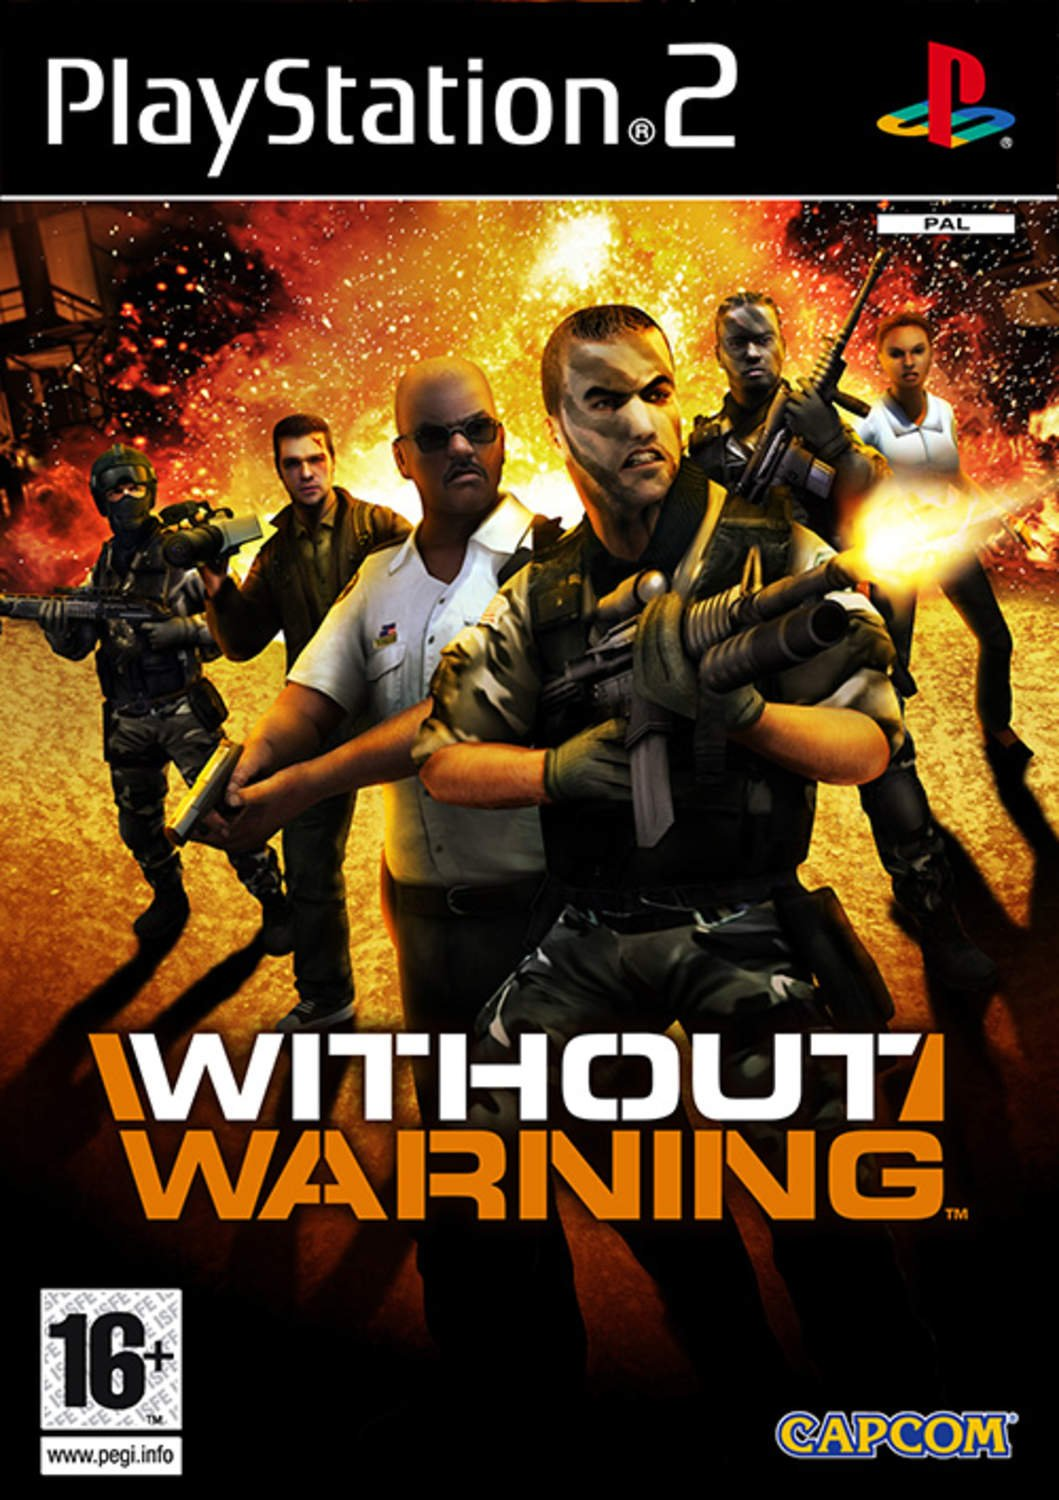 Without Warning (Ny & Inplastad) - Playstation 2